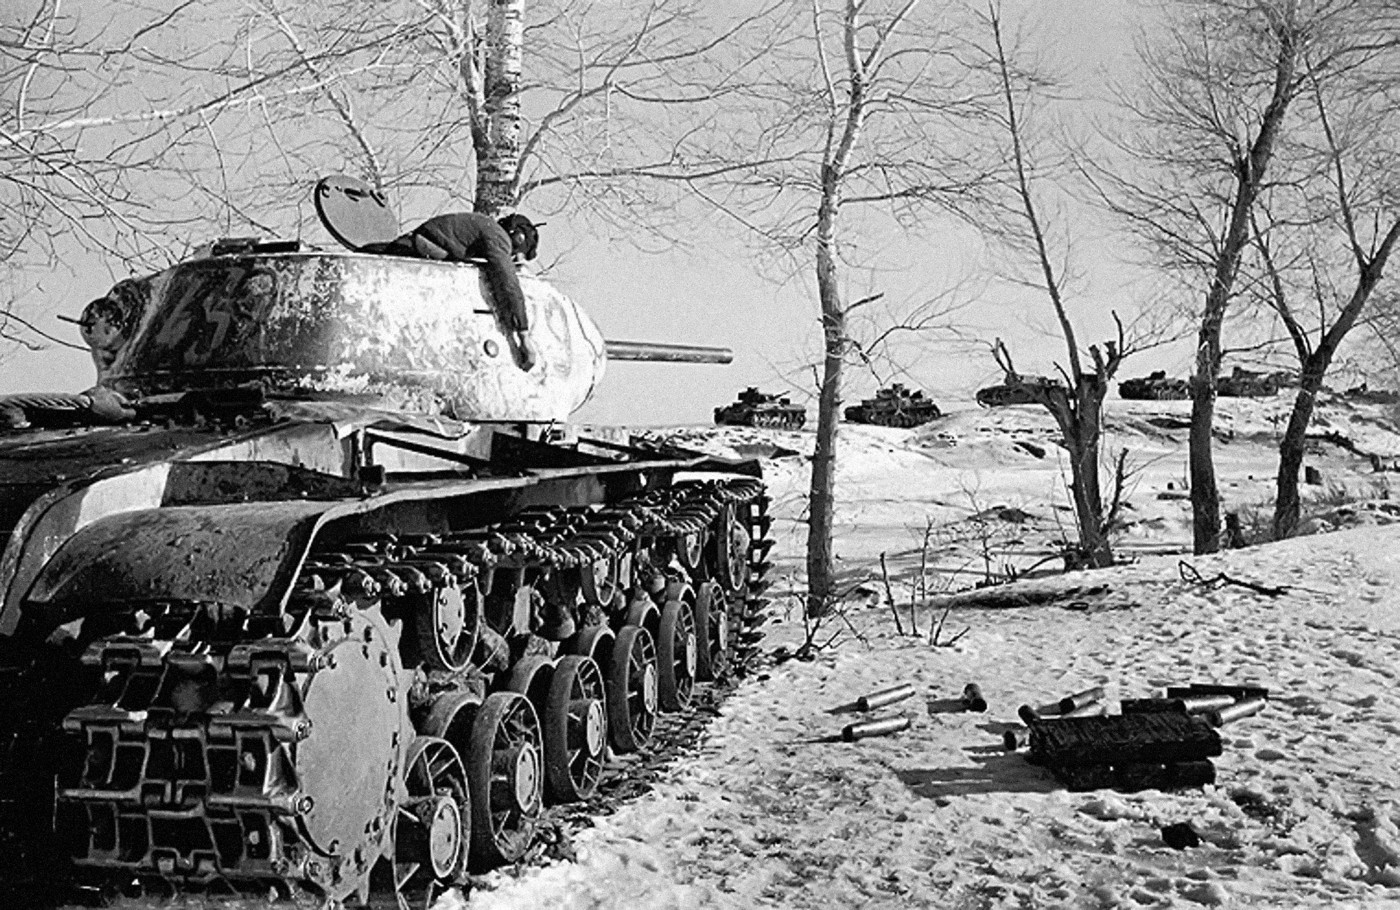 A knocked out KV-1S circa 1943, with the dead commander hanging from his cupola. It had just engaged the German column in the background.